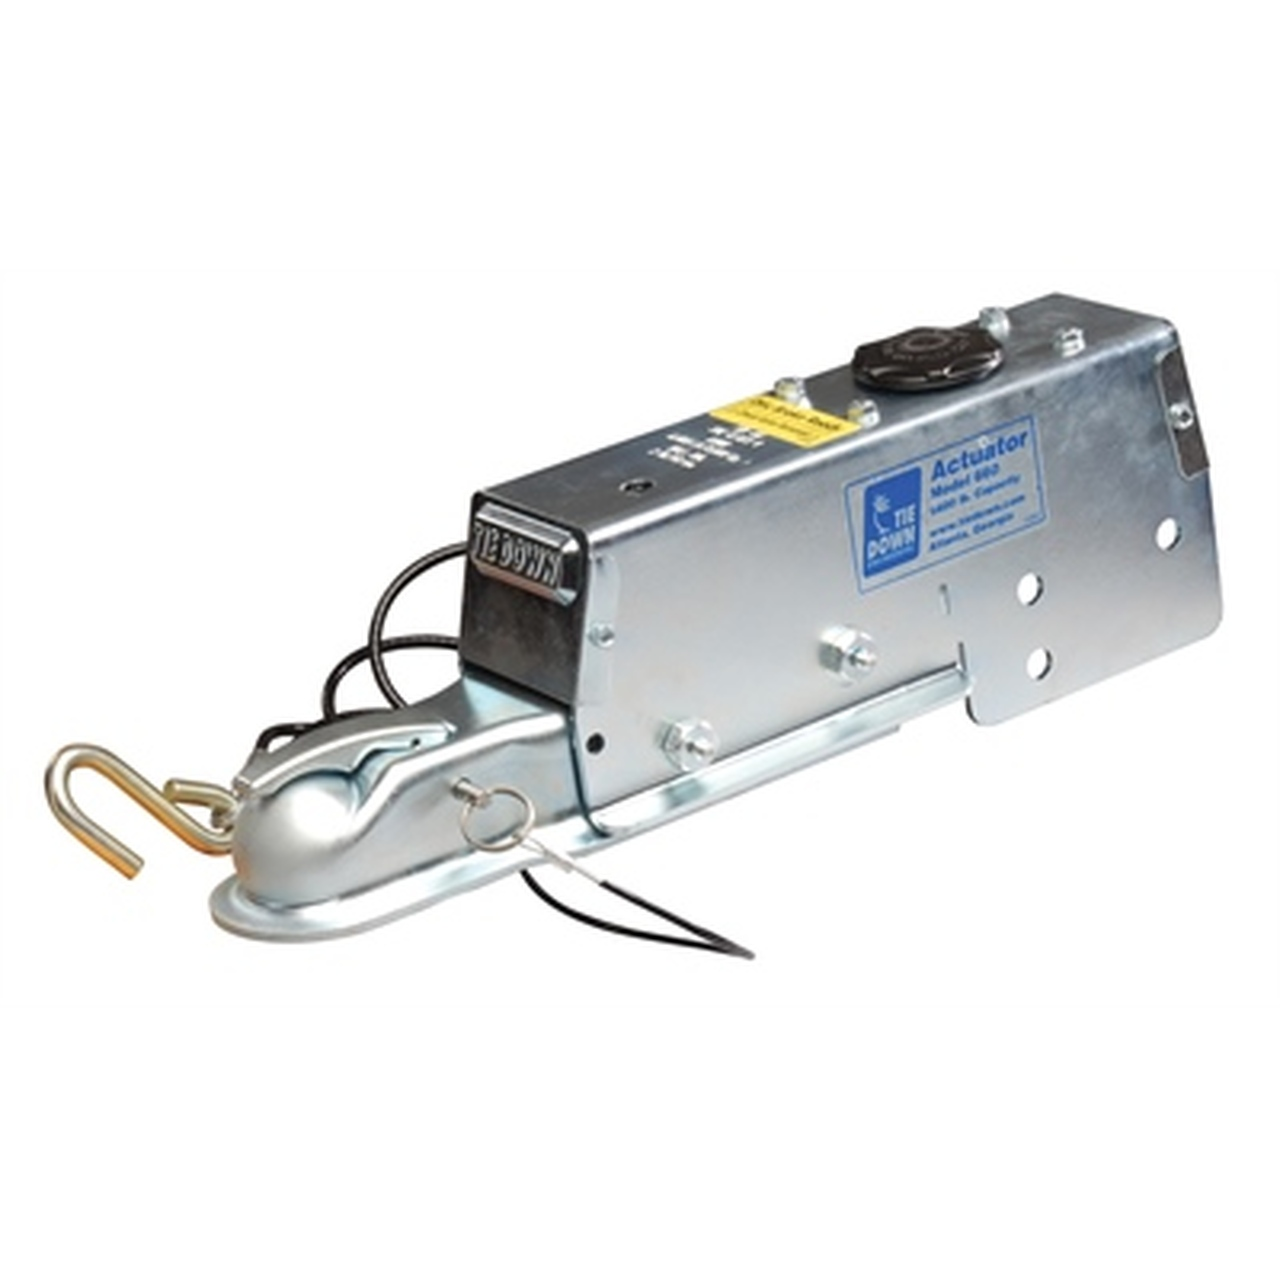 small resolution of brake coupler tie down engineering model 660 actuator at champion trailers